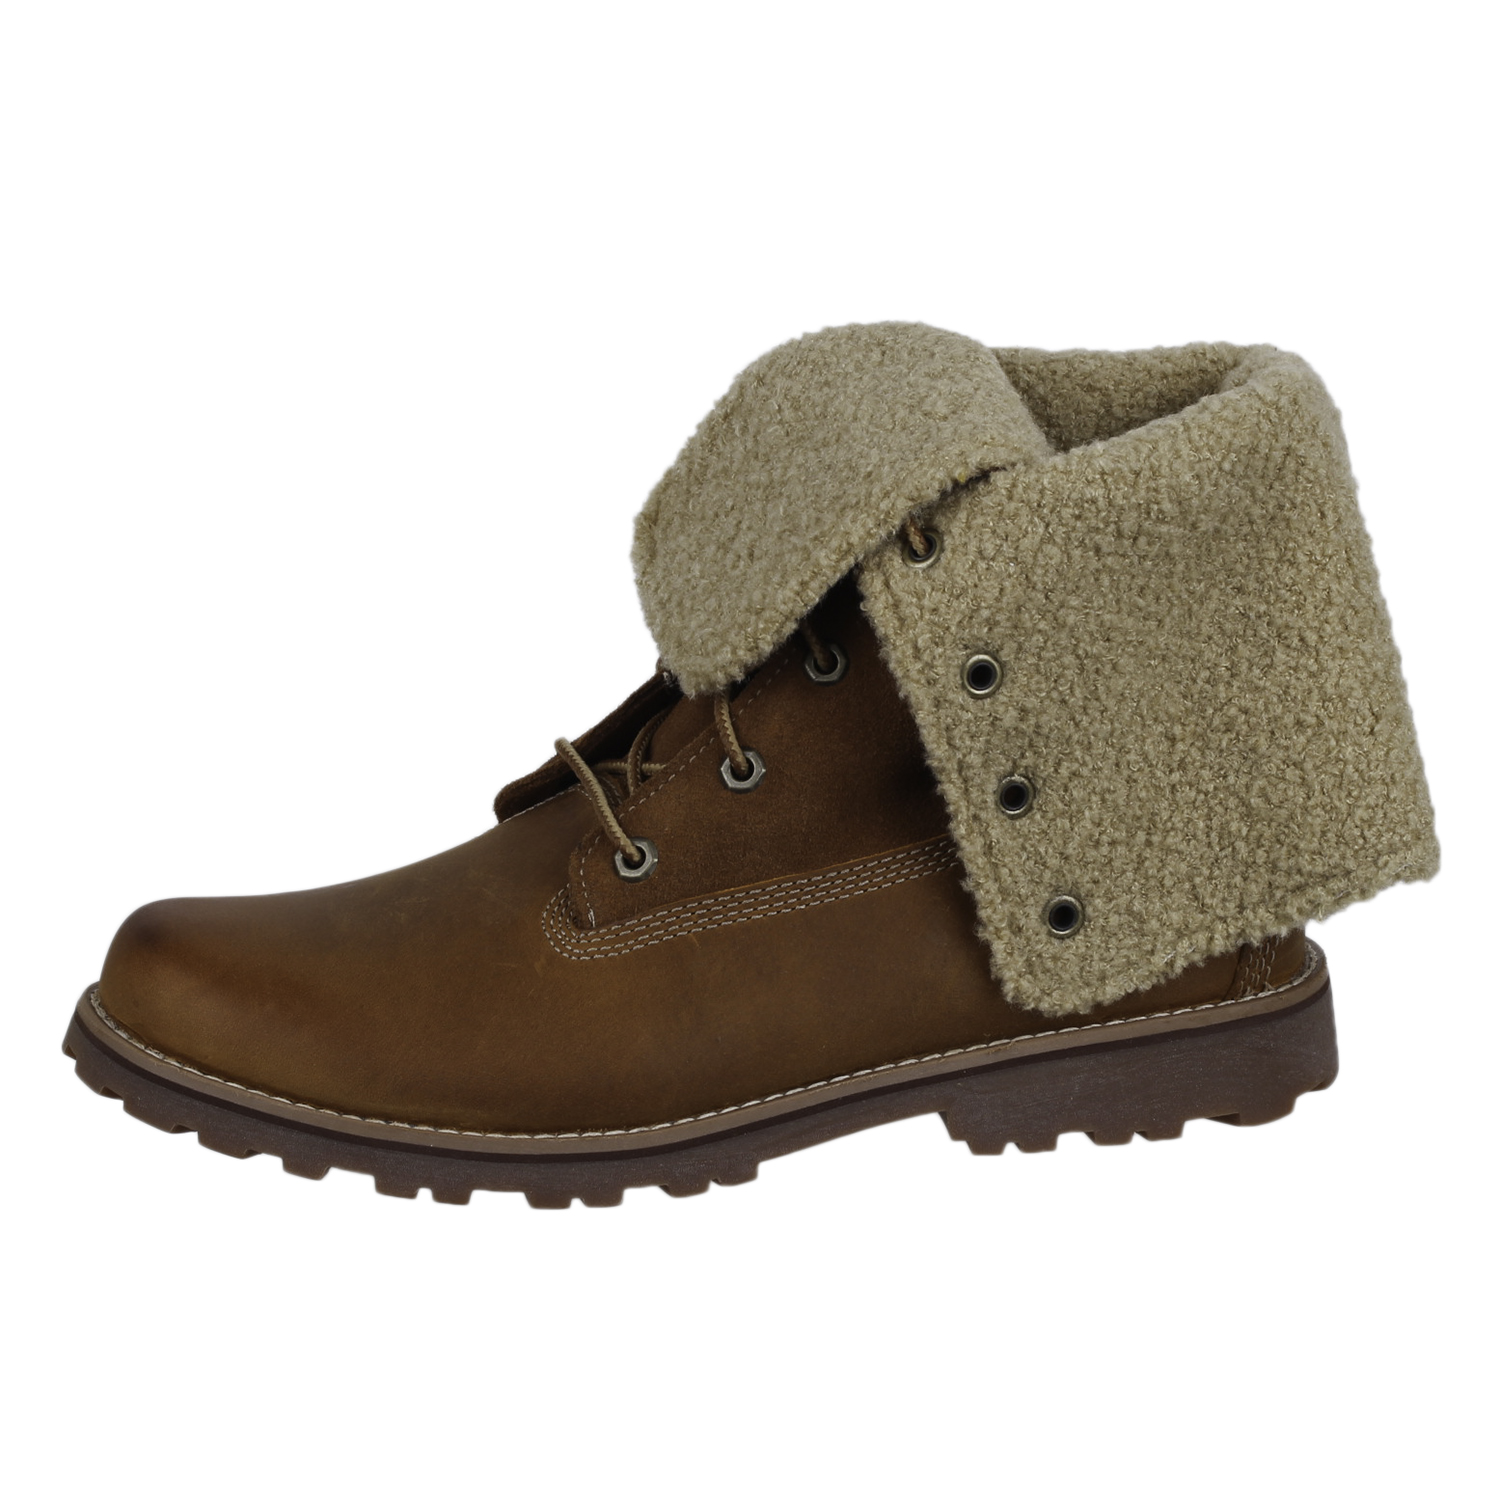 Details about Timberland Boys 6'' Shearling Fold Down Boot Shoes TB050919214 Brown size 6.5